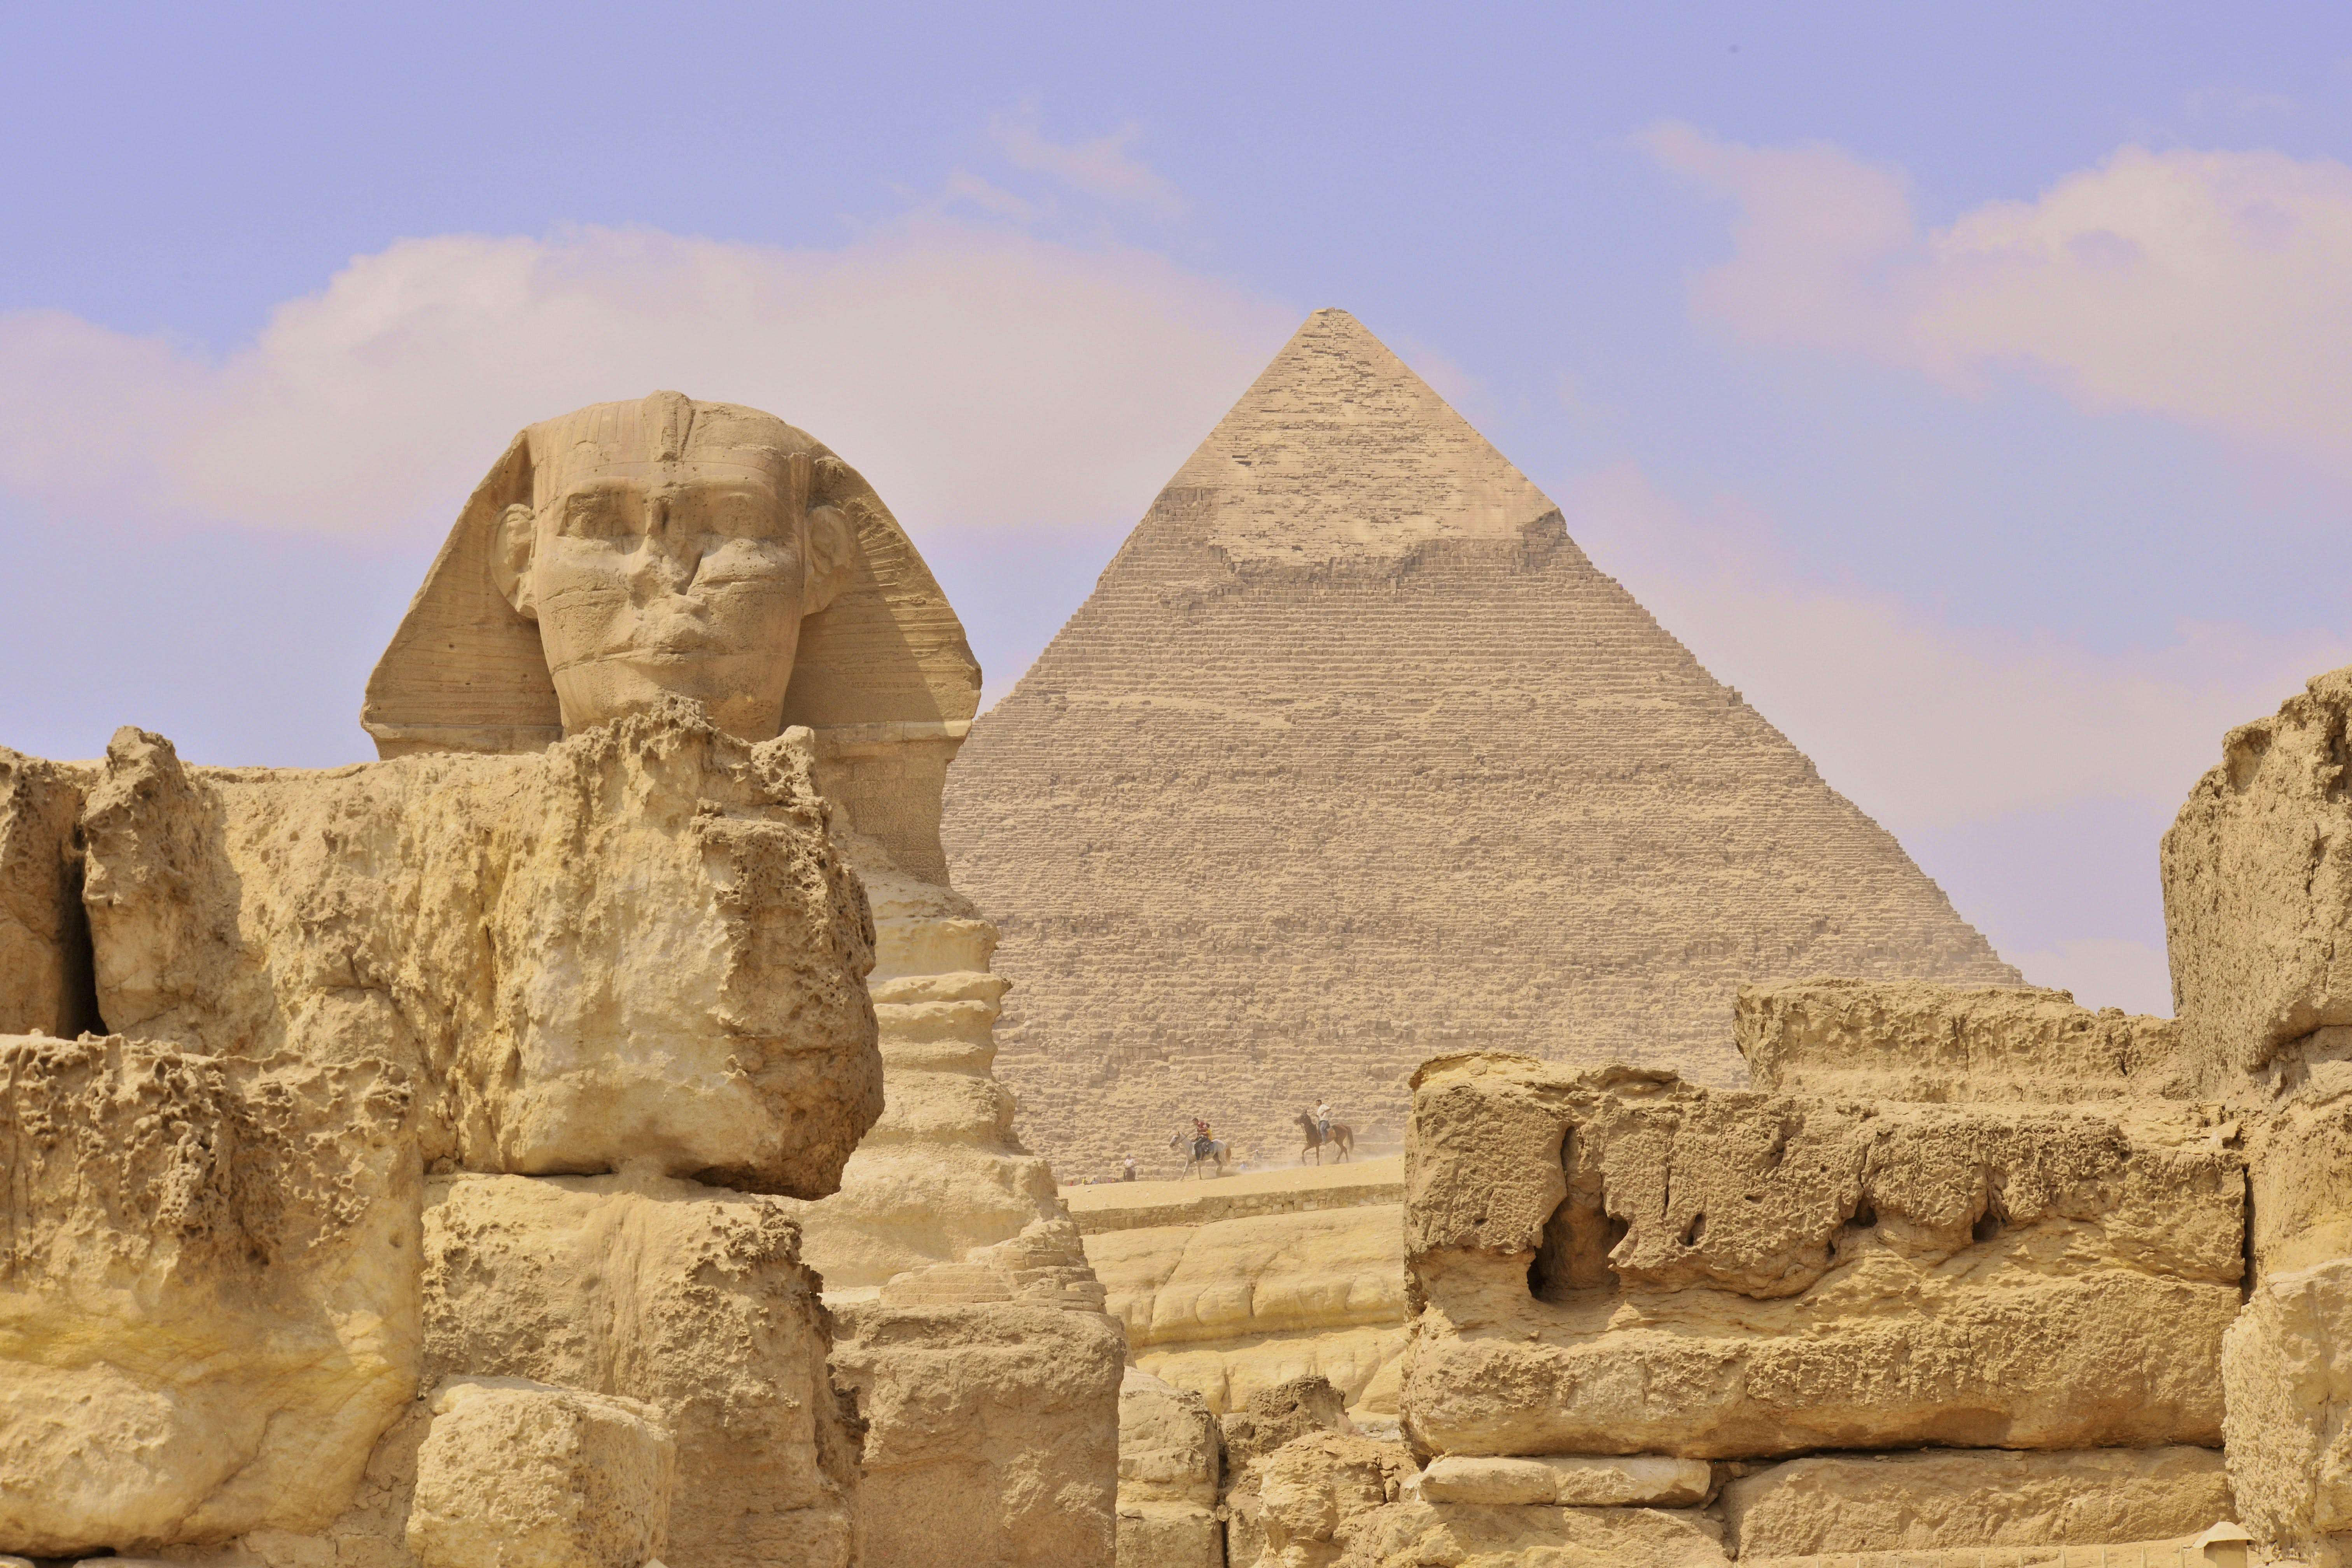 A pyramid and the Great Sphinx of Giza